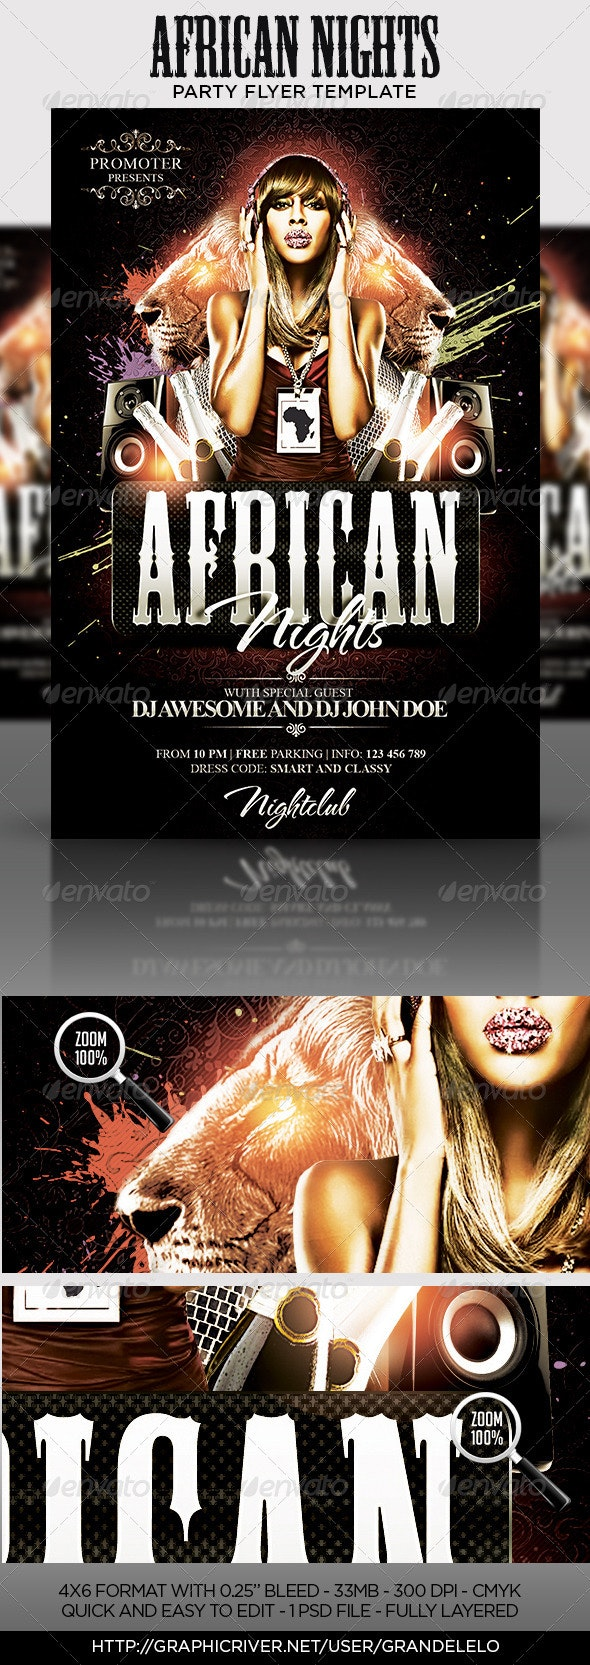 African Nights Flyer Template - Clubs & Parties Events